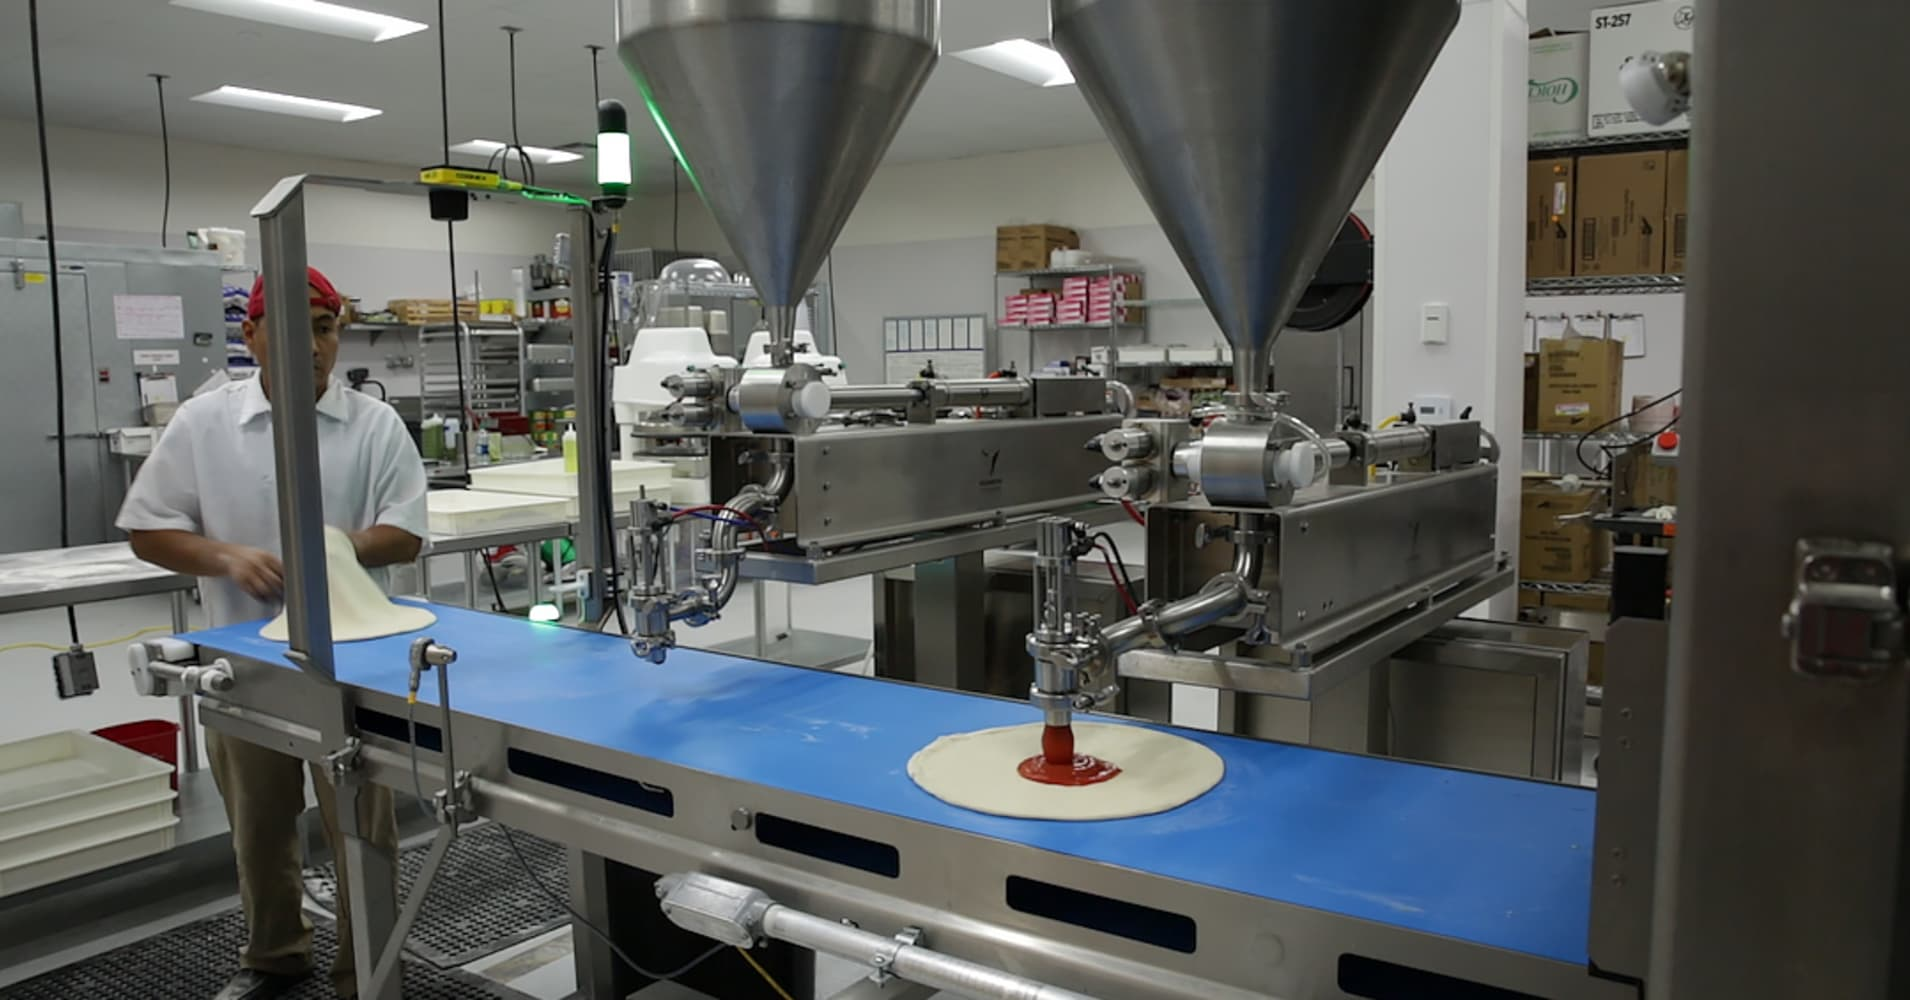 Robot pizza maker reportedly takes $375 million investment from SoftBank